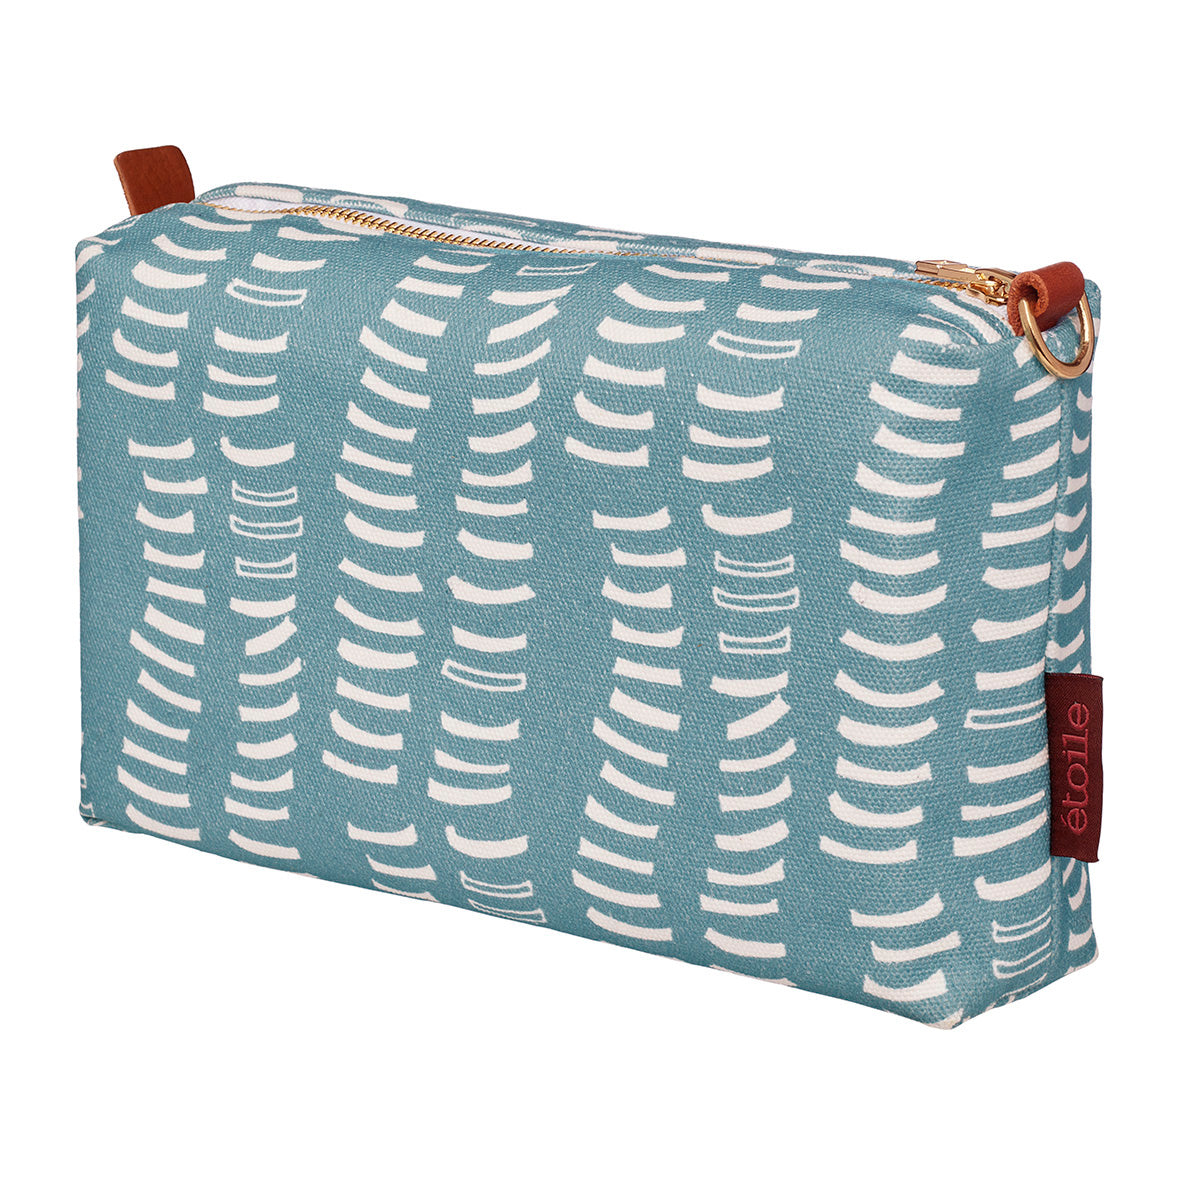 Pale blue canvas toiletry or wash bag-cosmetic-travel-water-resistant-proof-graphic-pattern-adams-rib-ships from Canada (USA)